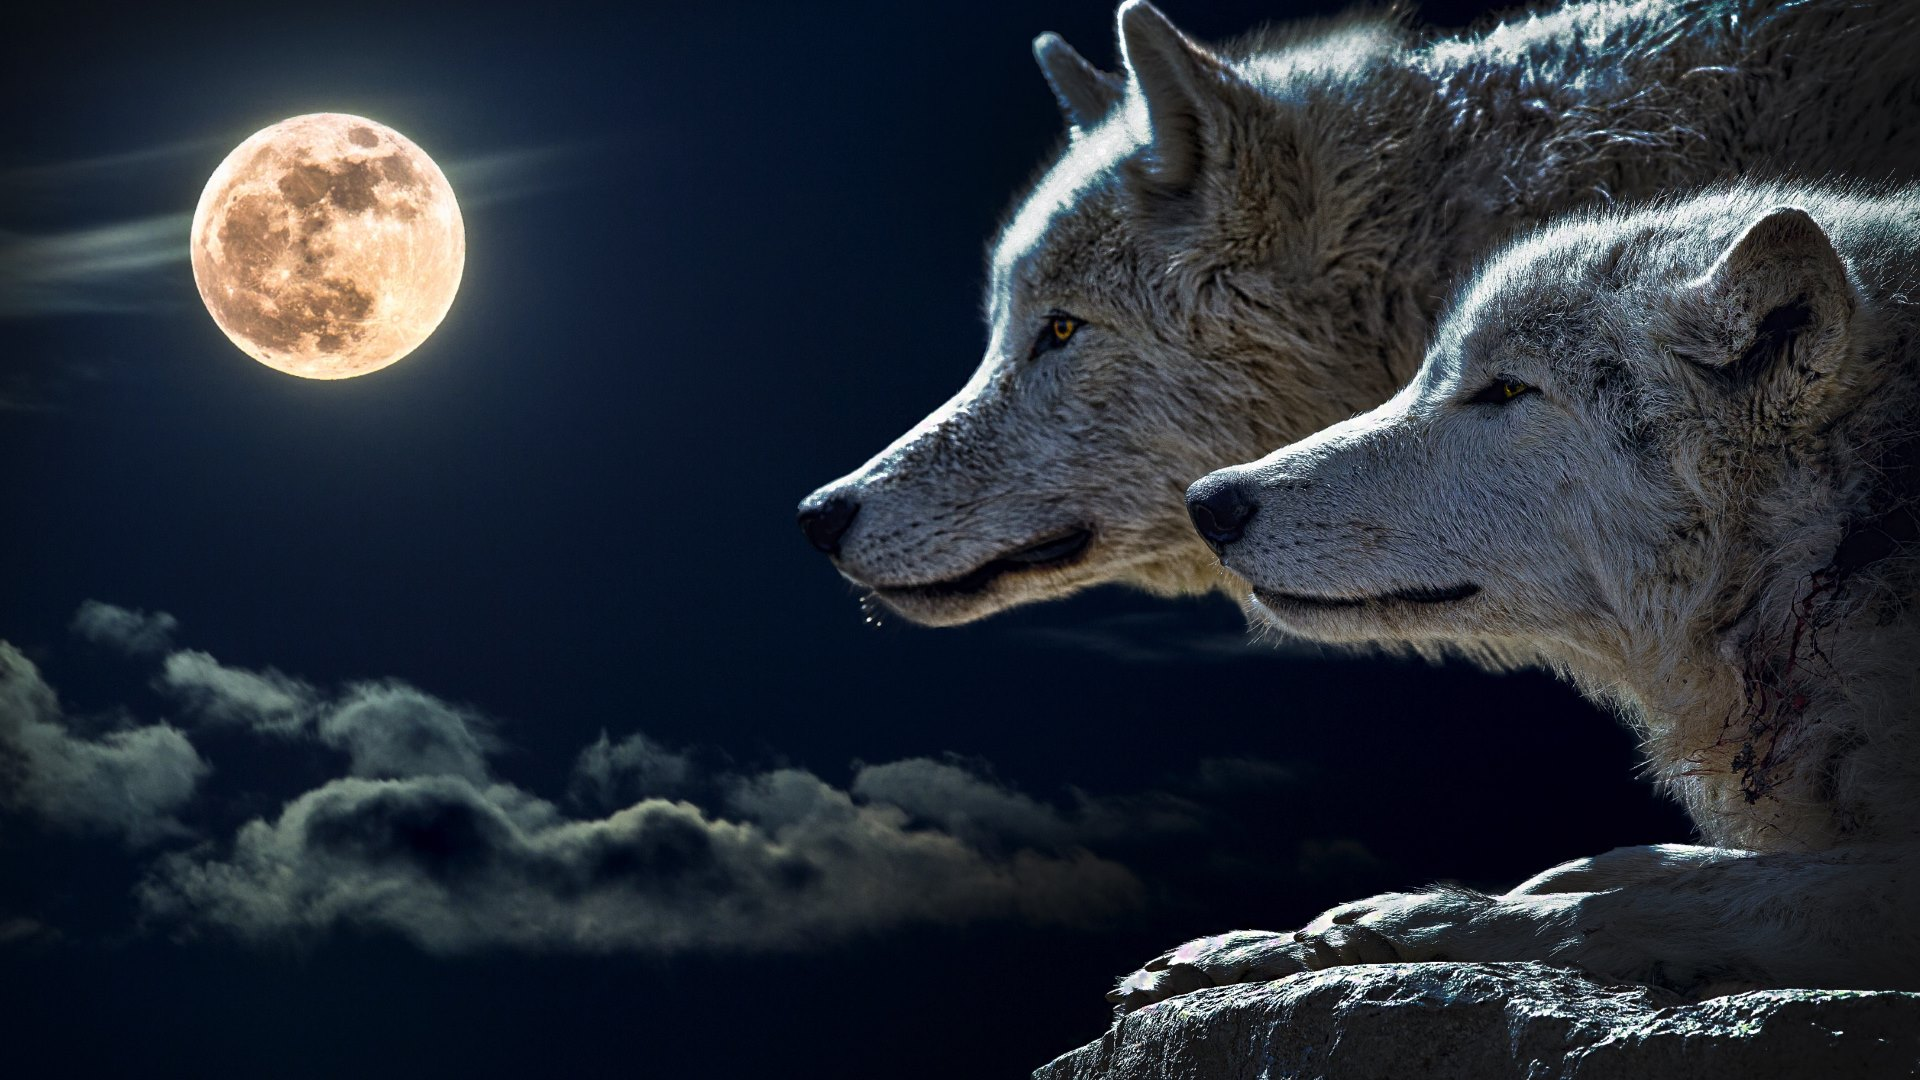 Wolves and Full Moon Wallpaper   Public Domain 1920x1080